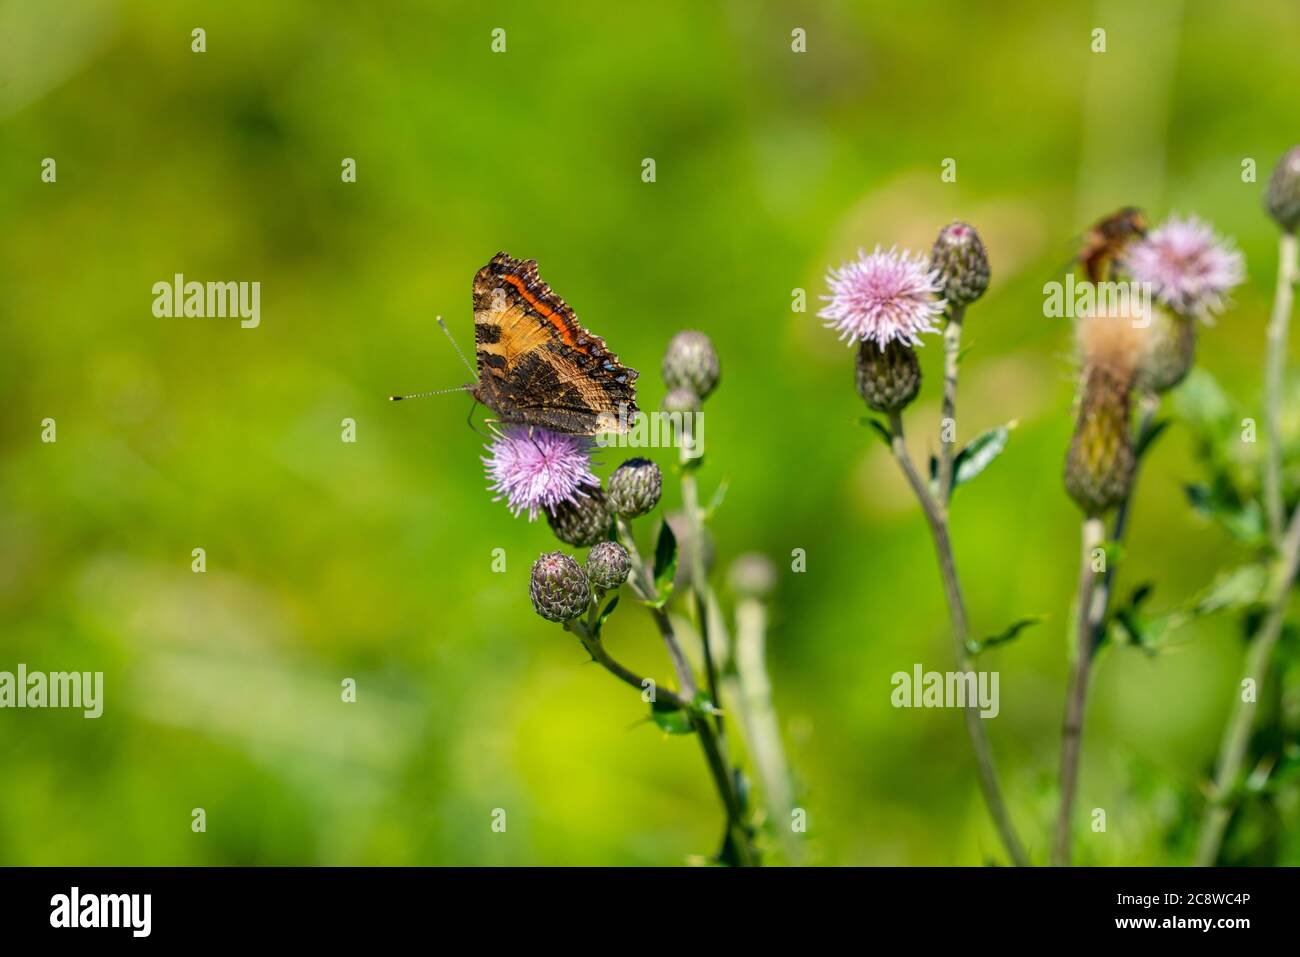 Butterfly, peacock butterfly, Aglais io, on a plant, common thistle, Stock Photo